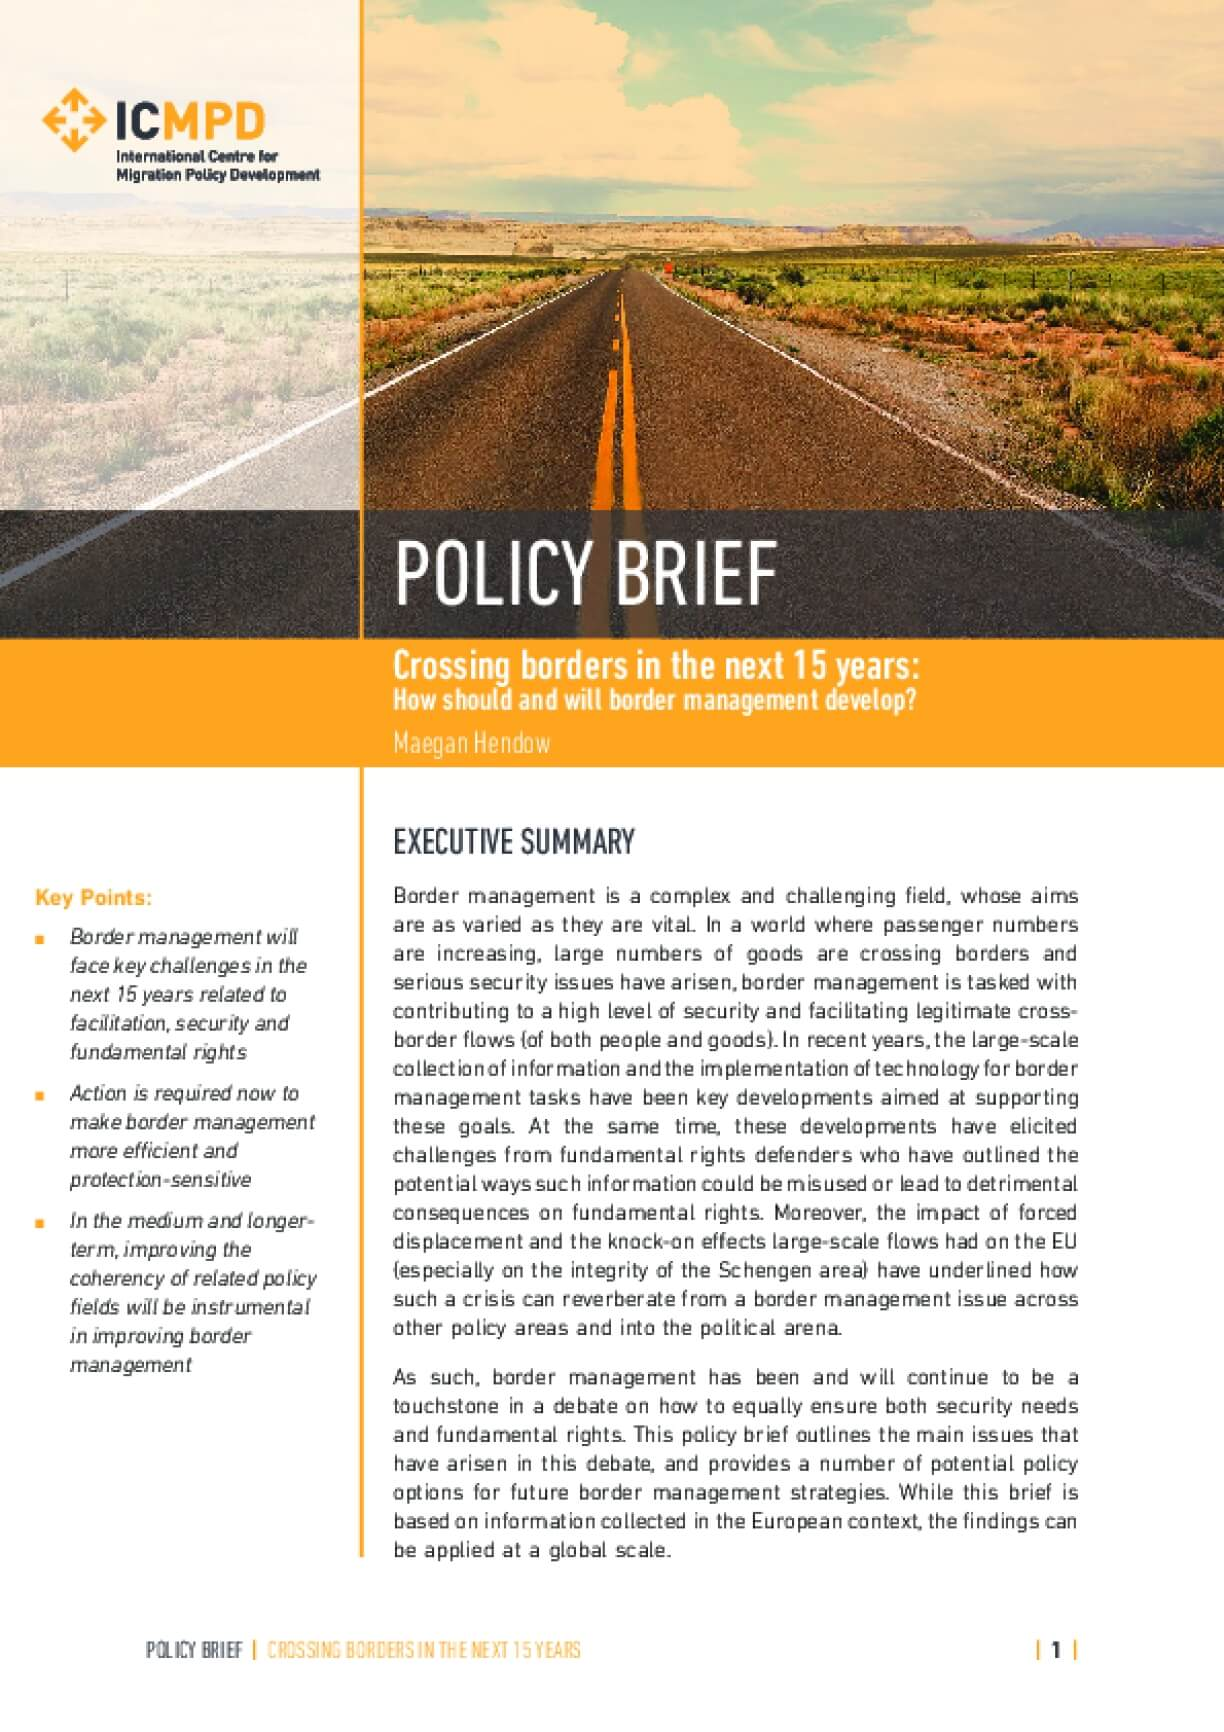 Crossing borders in the next 15 years: How should and will border management develop?